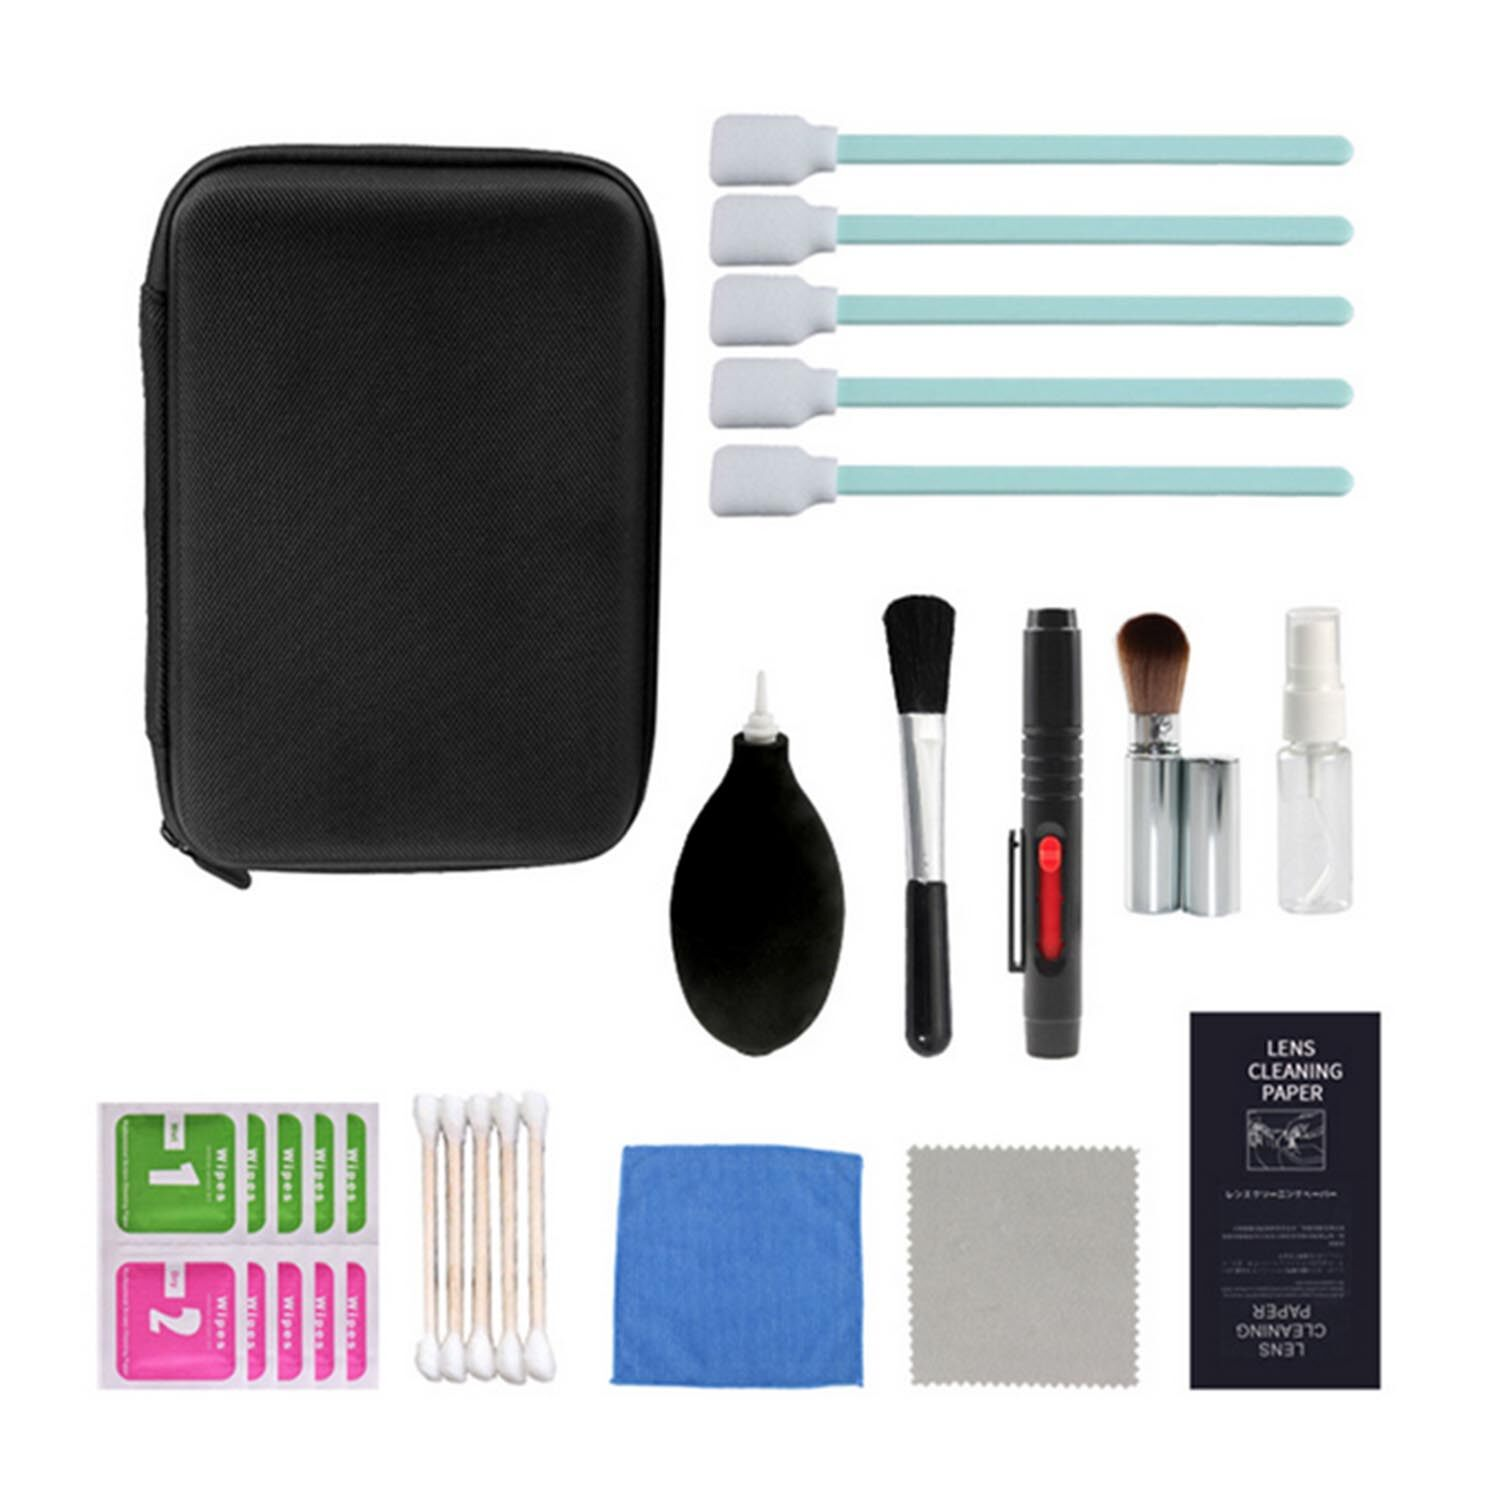 24pcs Professional Cleaning Tools Kit For Dslr Cameras Photographic Equipment Computer Mobile Phone Digital Camera Notebook.